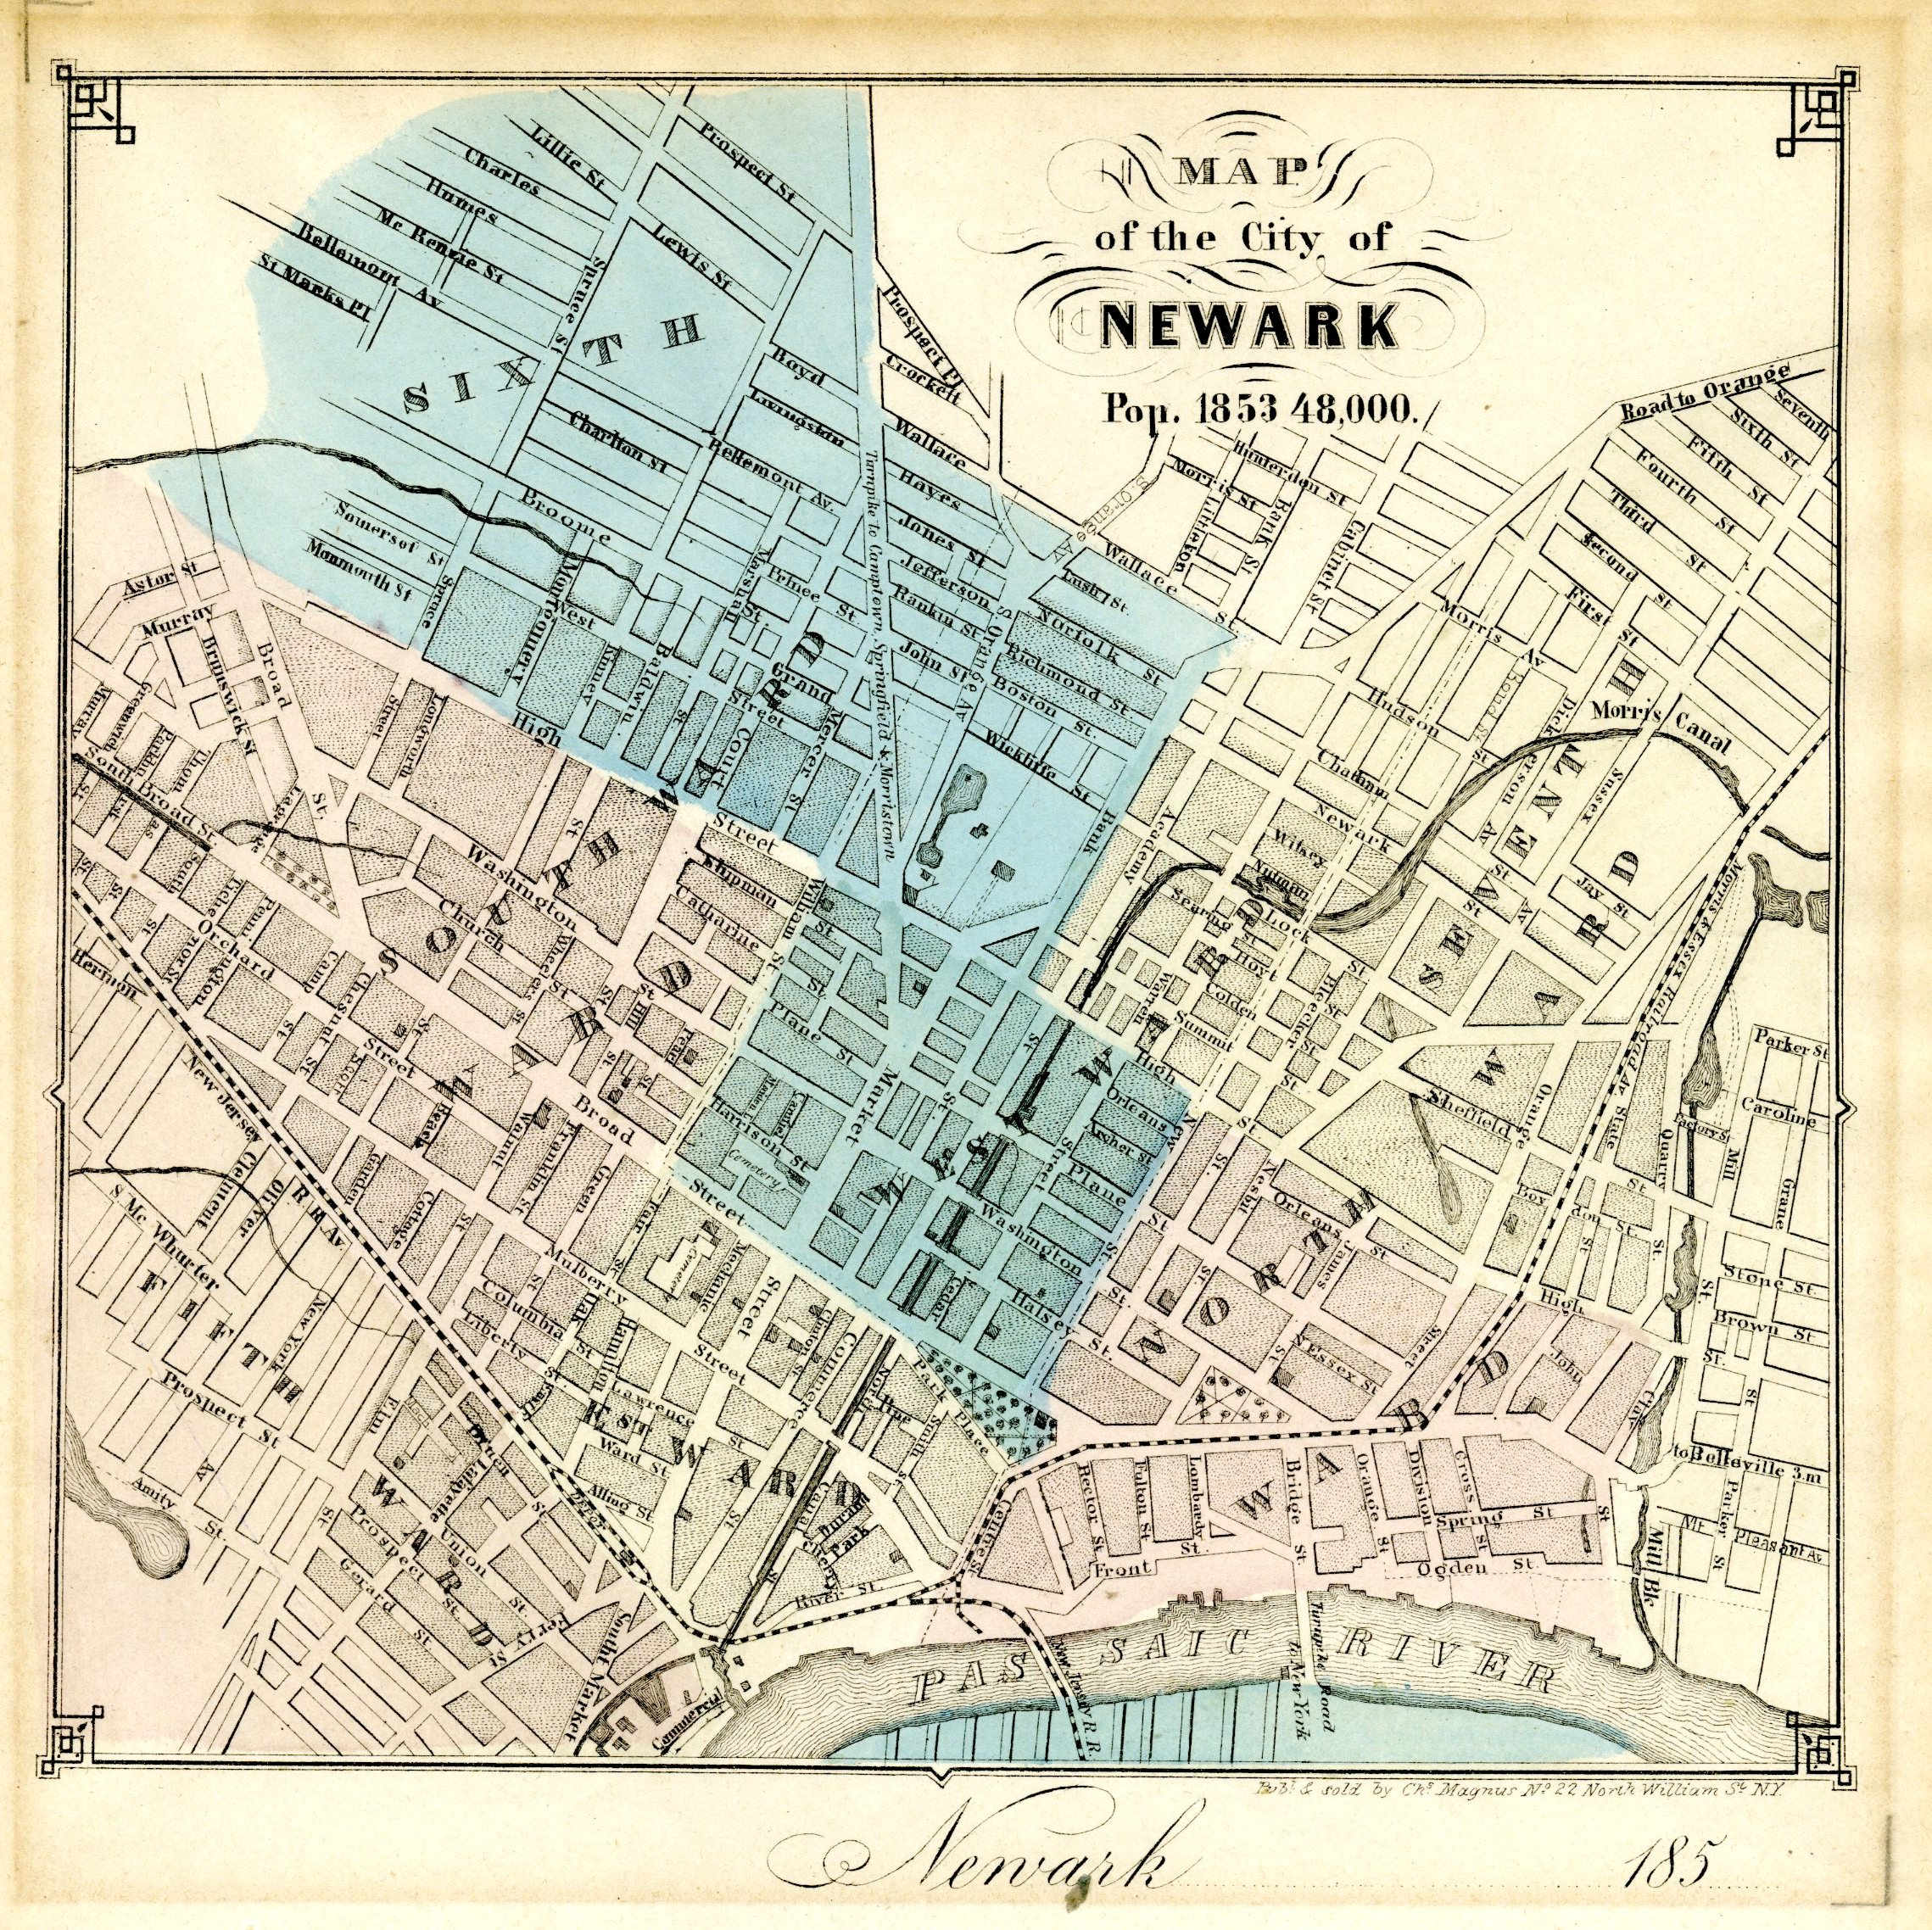 Maps in the Littman Library and Newark Public Library Barbara and